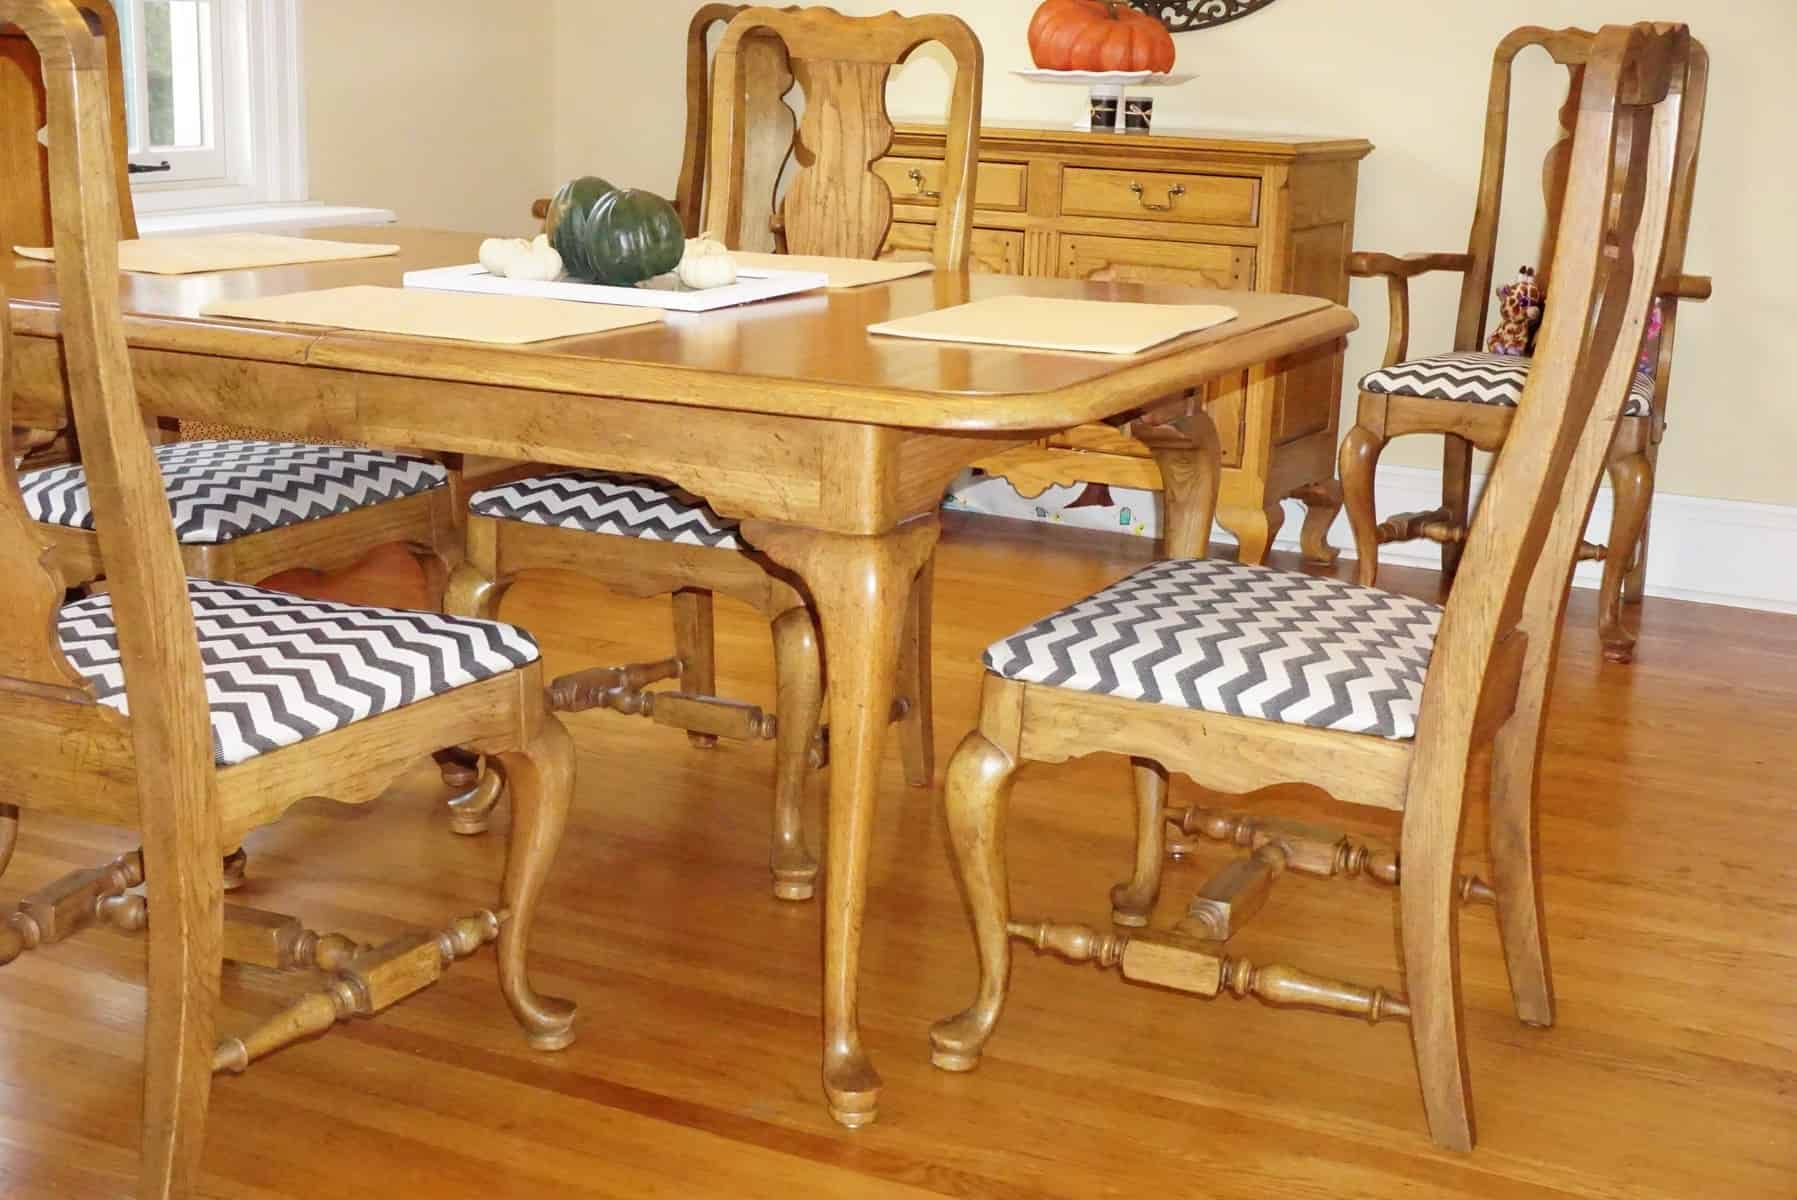 Room Chairs How To Reupholster Dining Room Chair Seat Covers Sitting